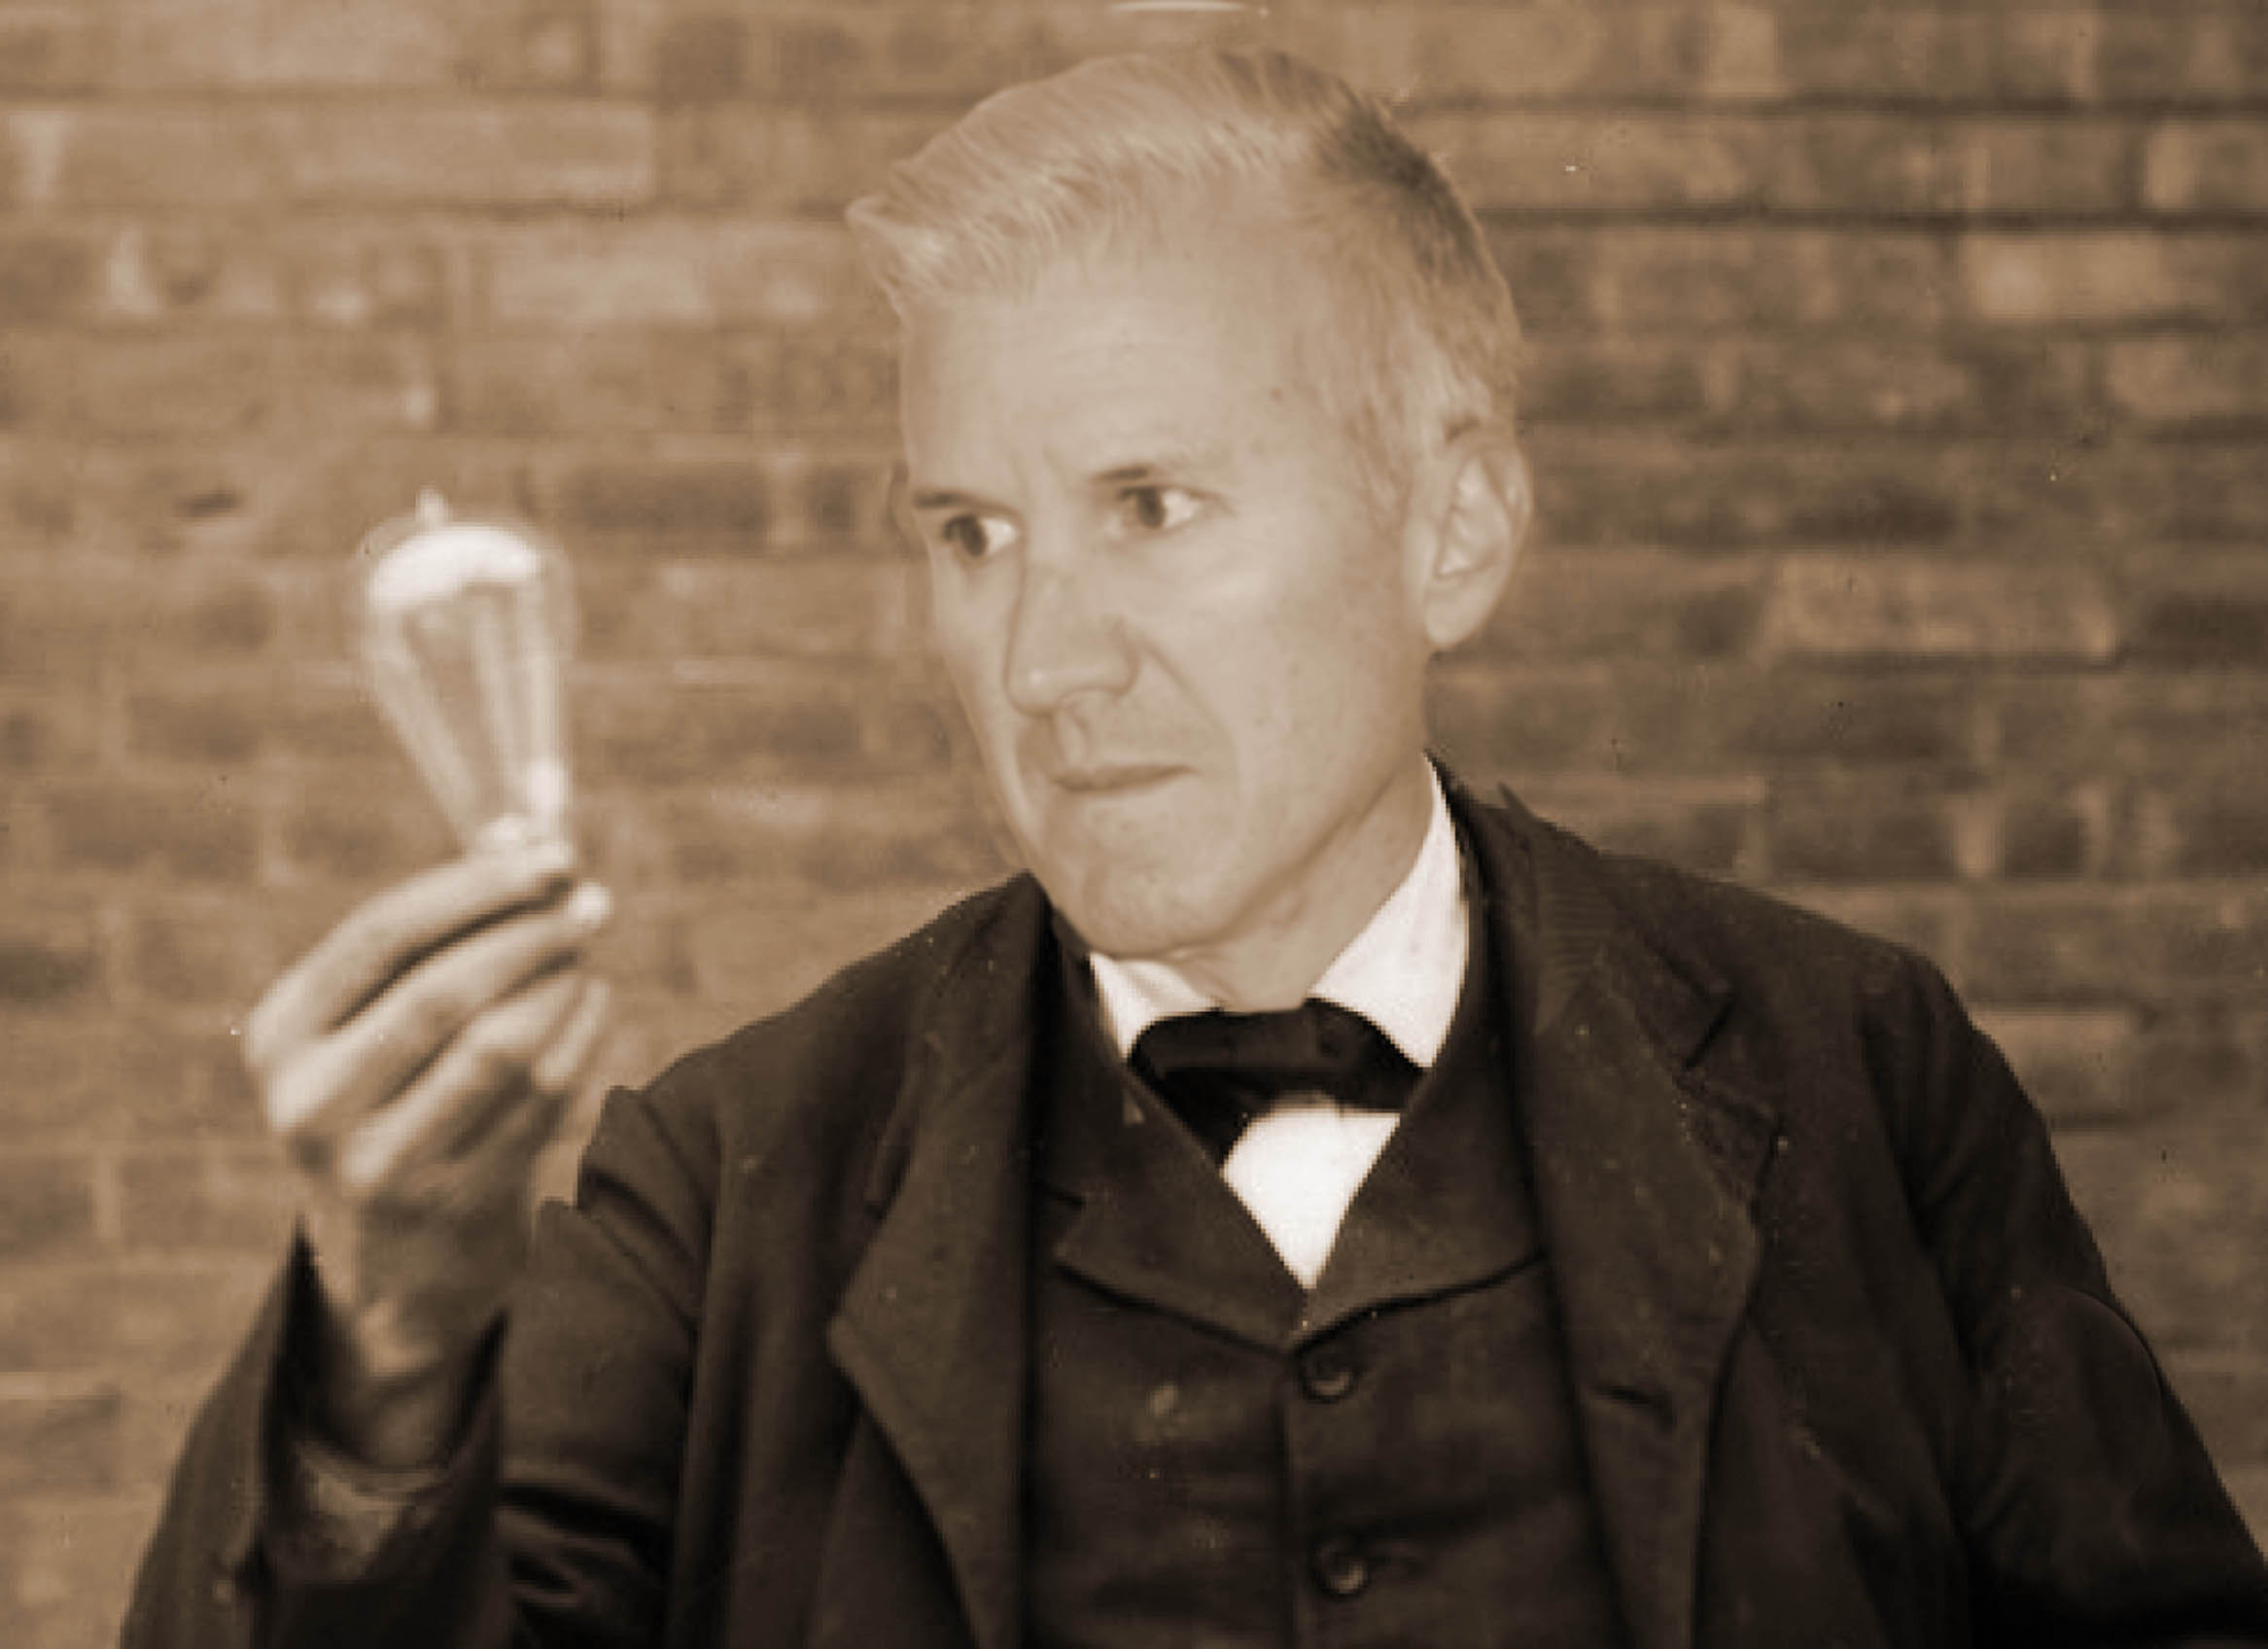 Thomas edison ligntbulb avec Pierre layers final sepia light